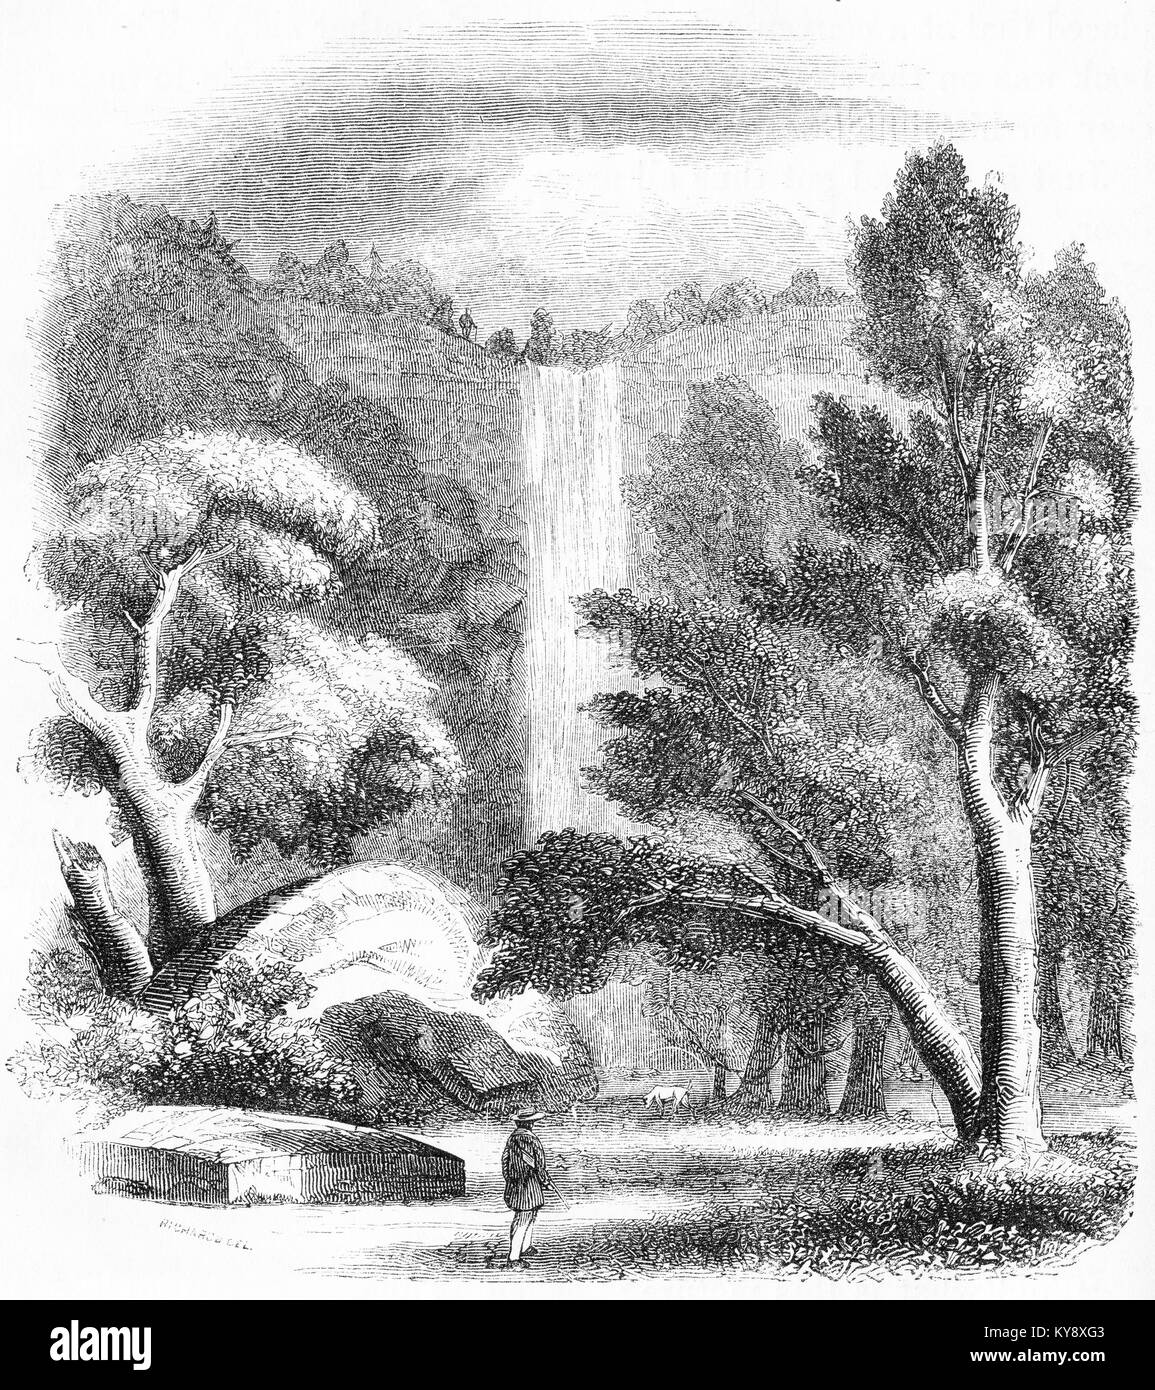 Engraving of a high waterfall. From an original engraving in the Harper's Story Books by Jacob Abbott, 1854. - Stock Image